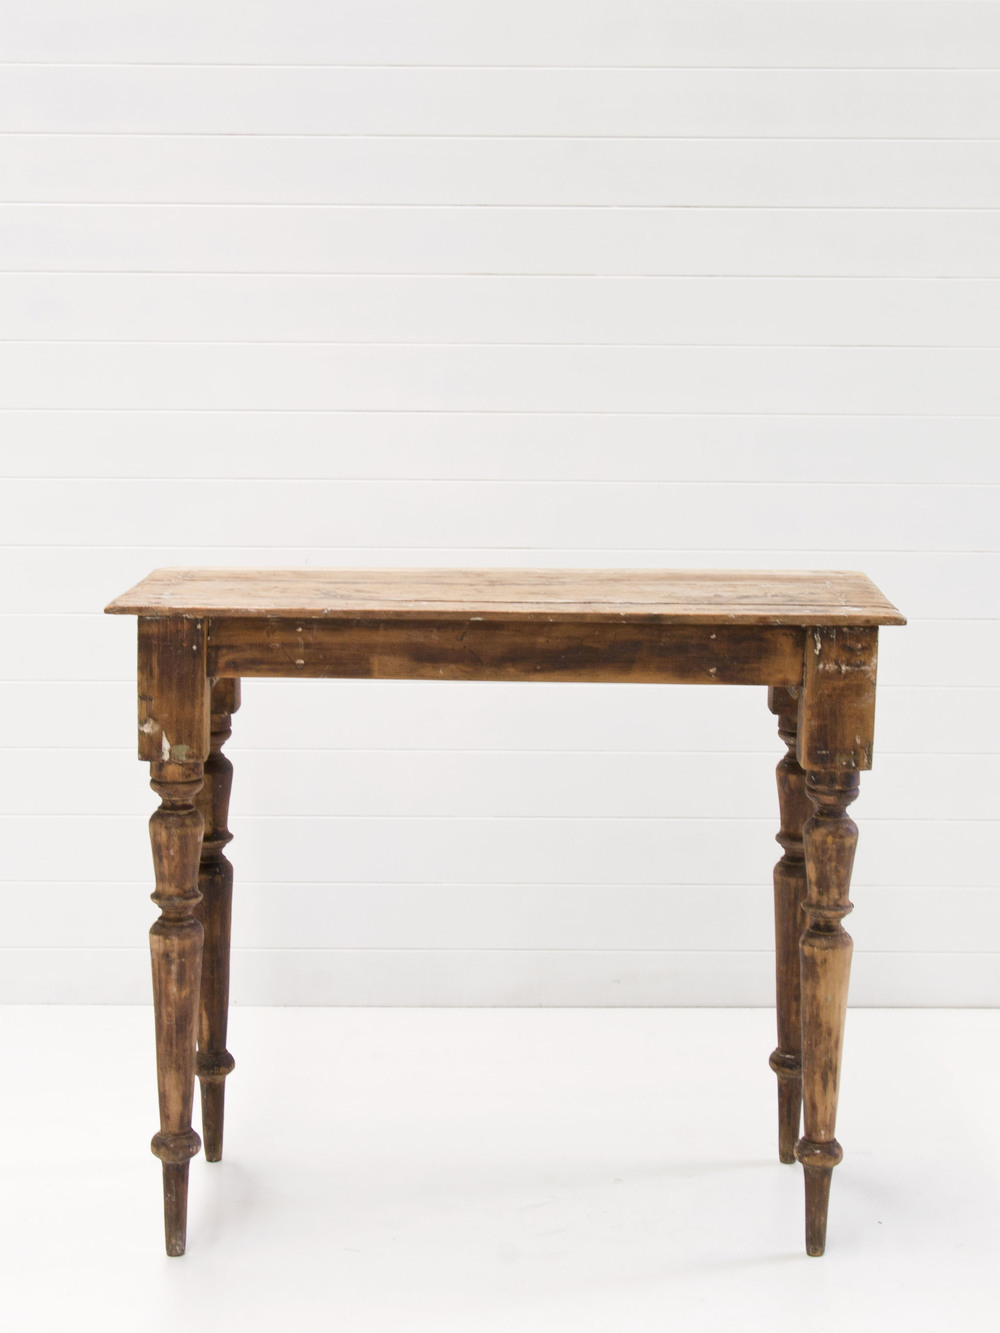 Mabel wooden vintage table.jpg